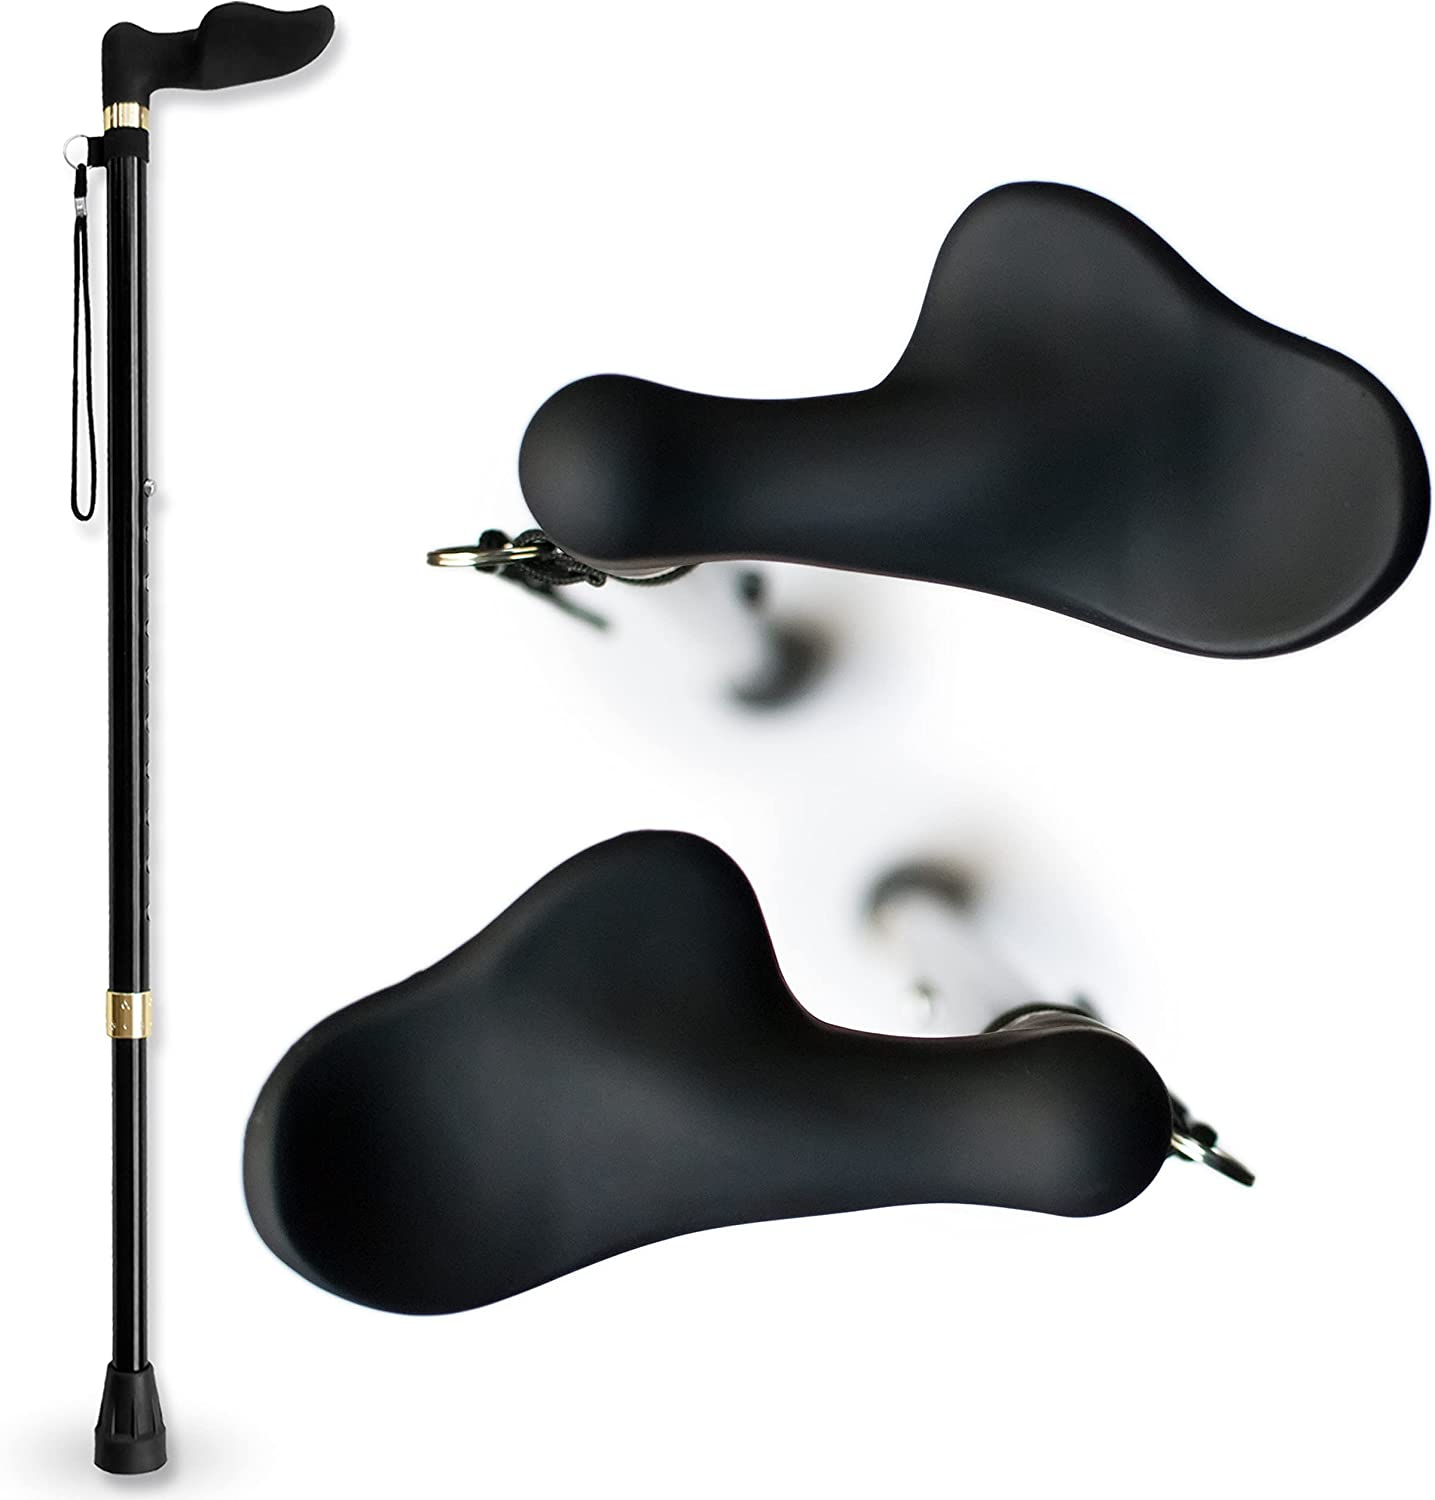 Challenge the lowest price of Japan ☆ RMS Right Hand Walking Cane with - Orthopedic A Fort Worth Mall Handle Grip Palm